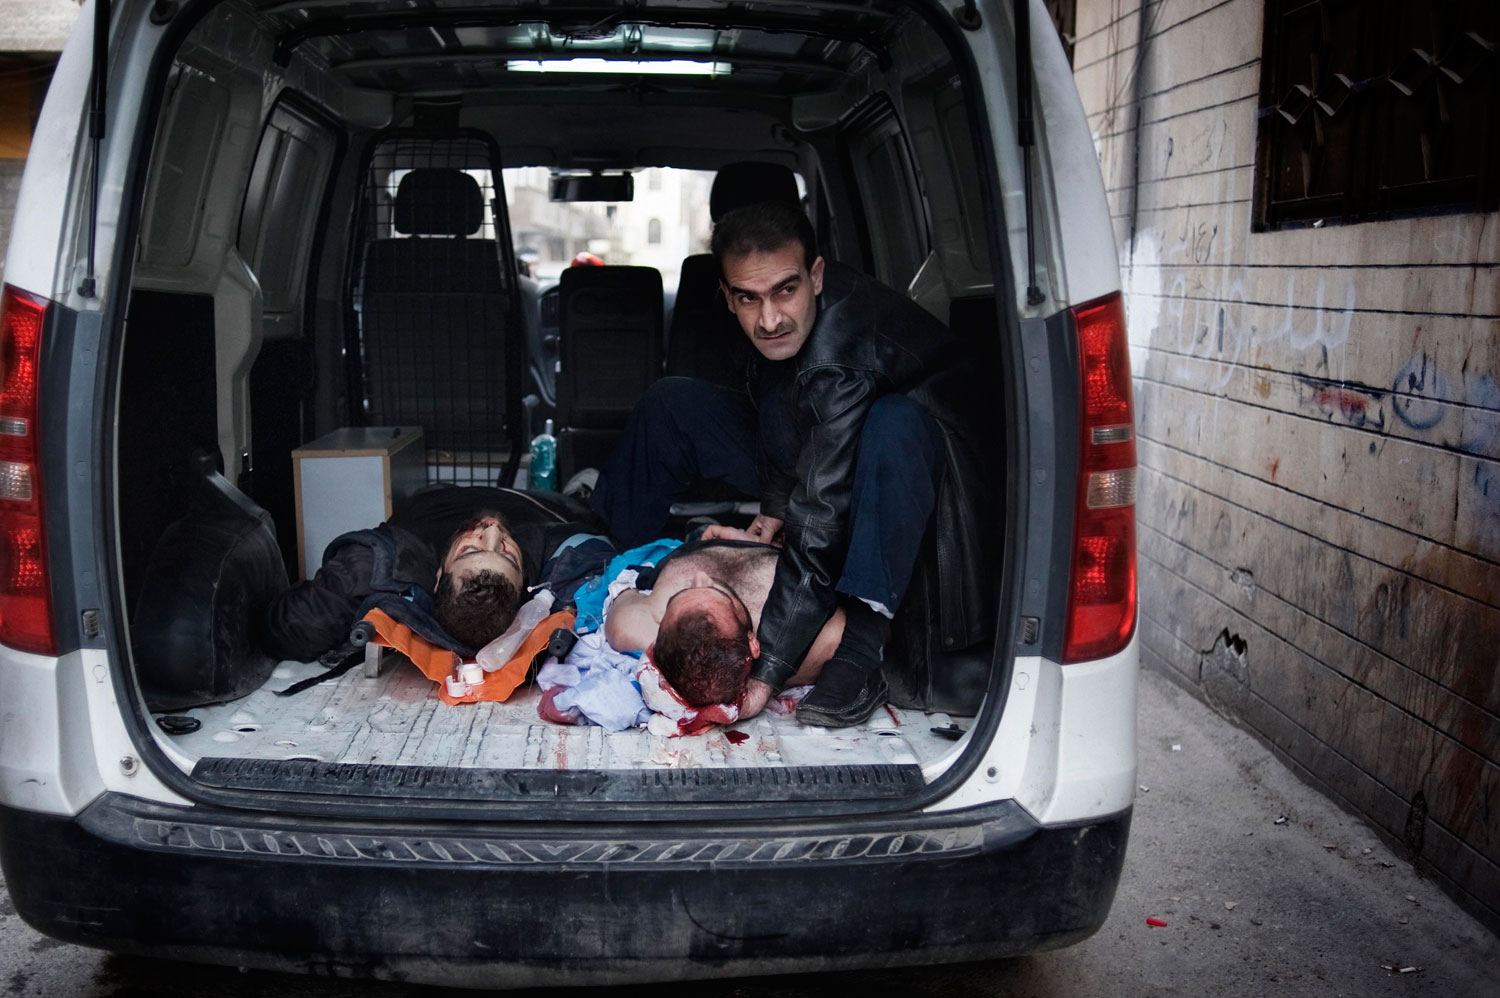 A Syrian man holds the head of a severely wounded man at the entrance of a house that is used as a hospital in Bab Amr. Feb. 6, 2012